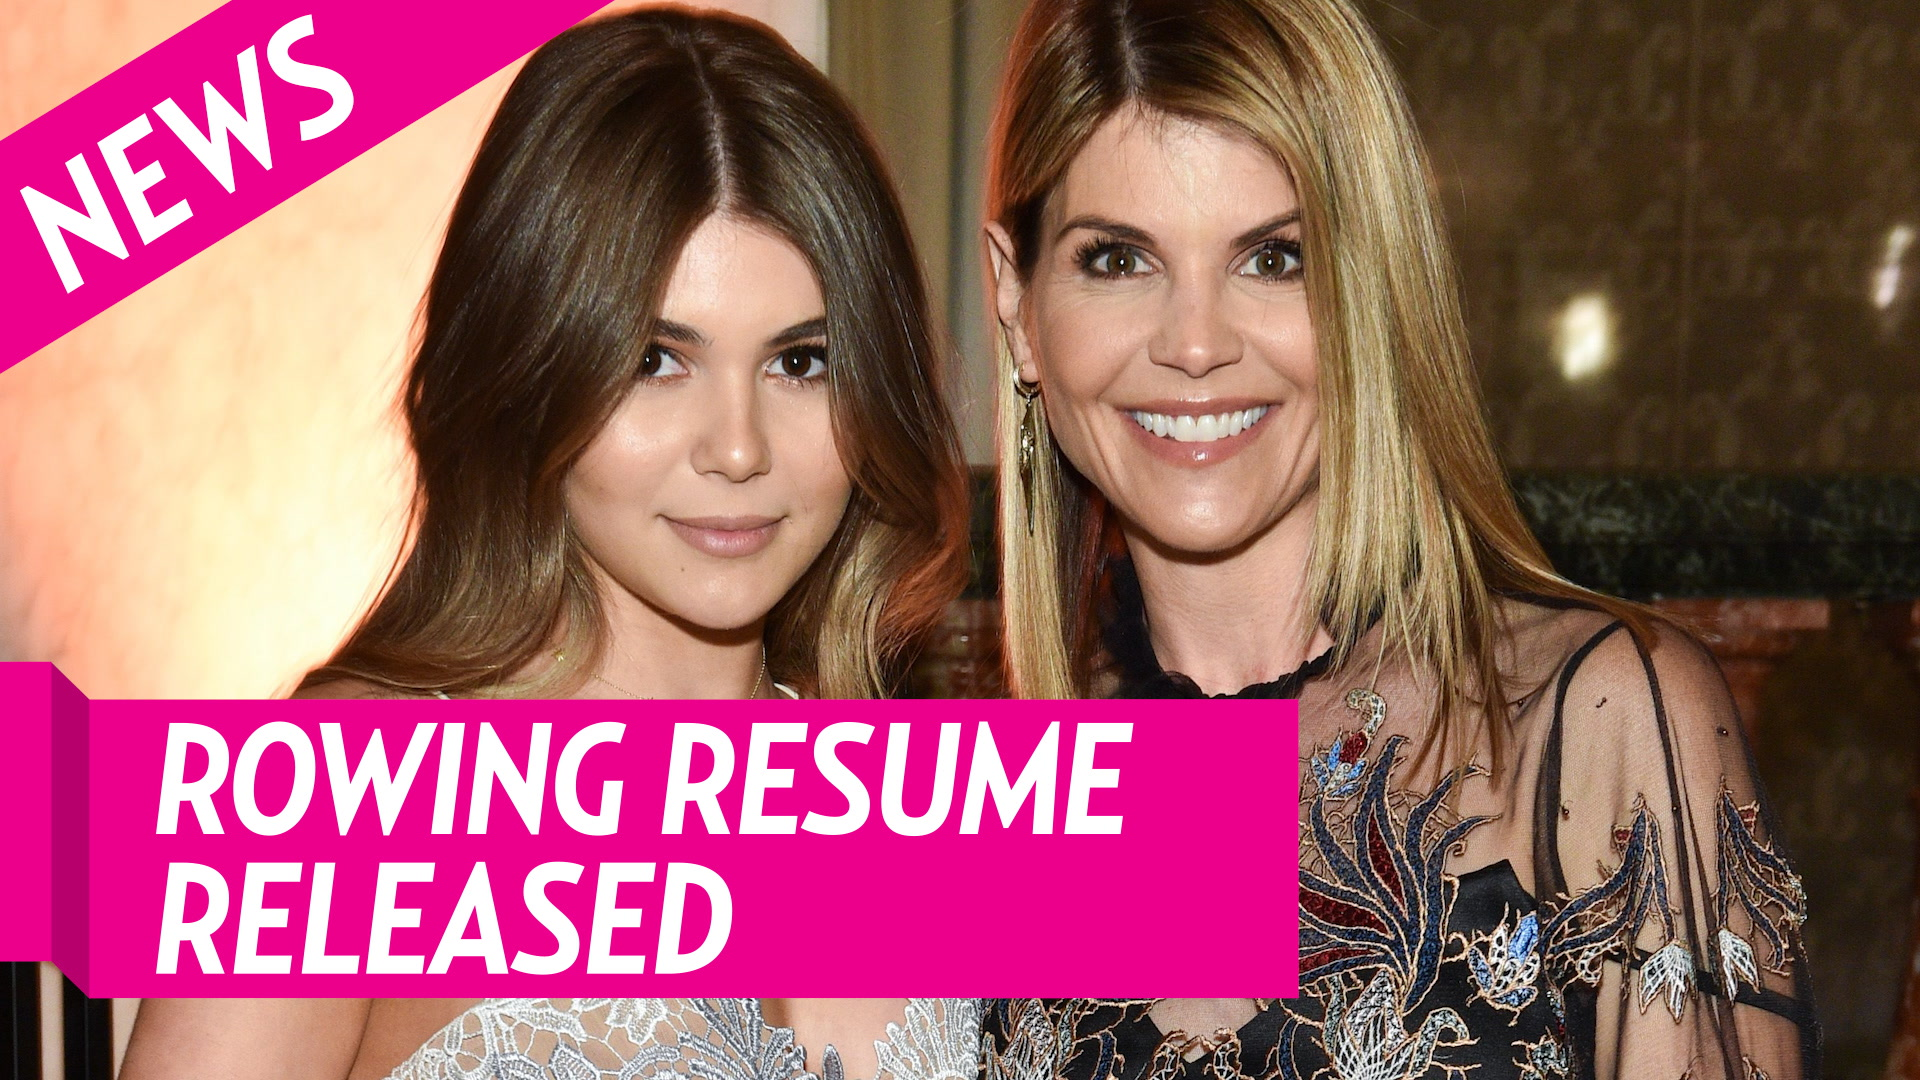 Lori Loughlin S Daughter S Rowing Resume Released By Prosecutors